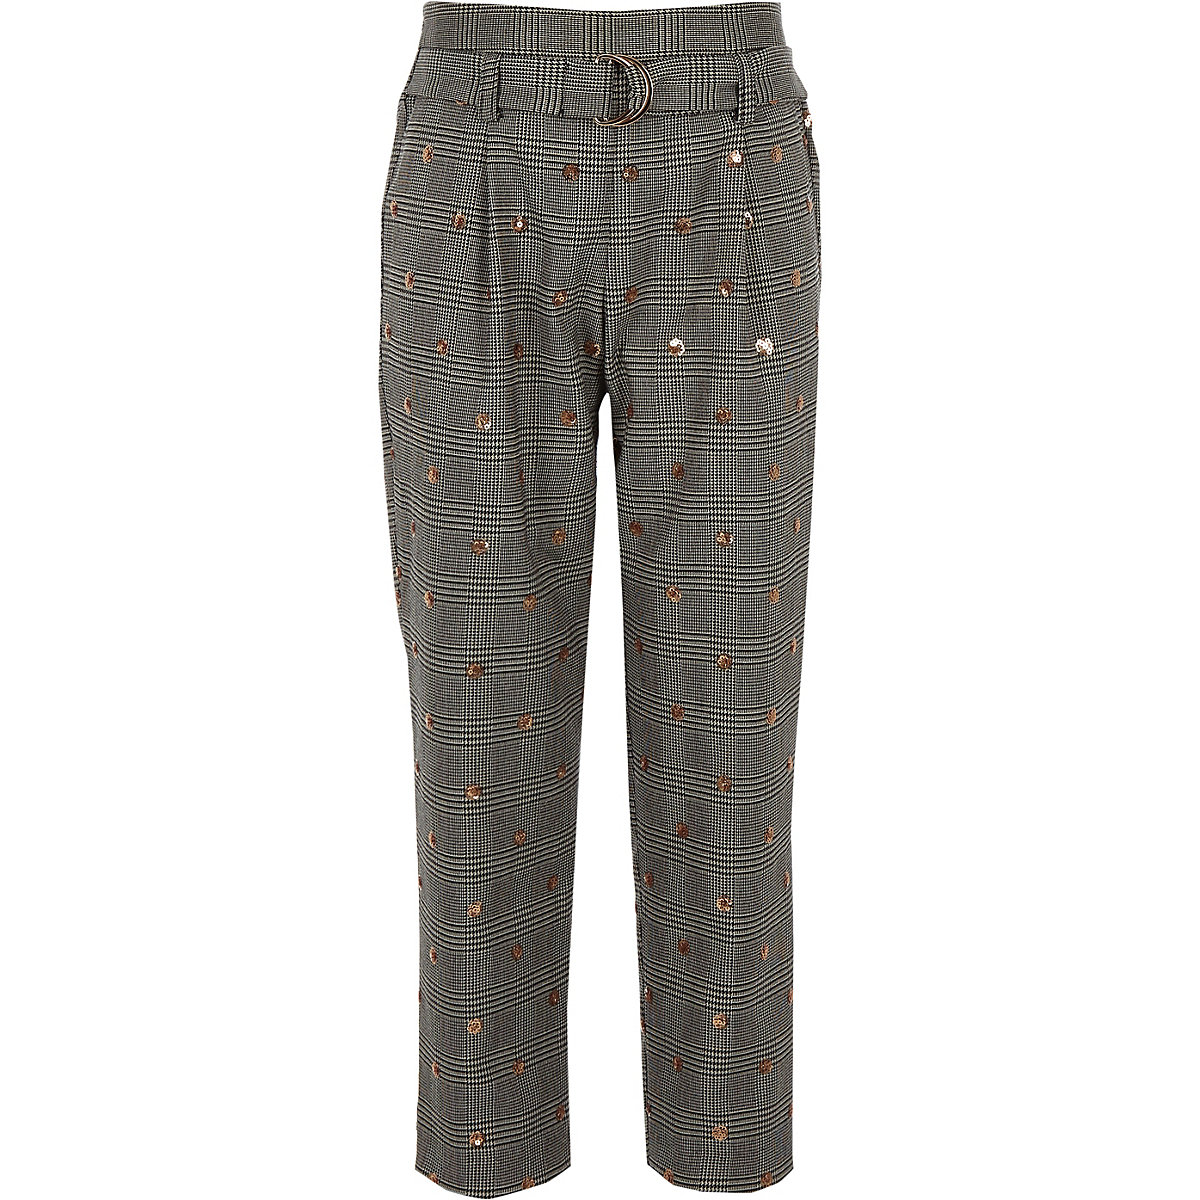 Girls grey check sequin trousers